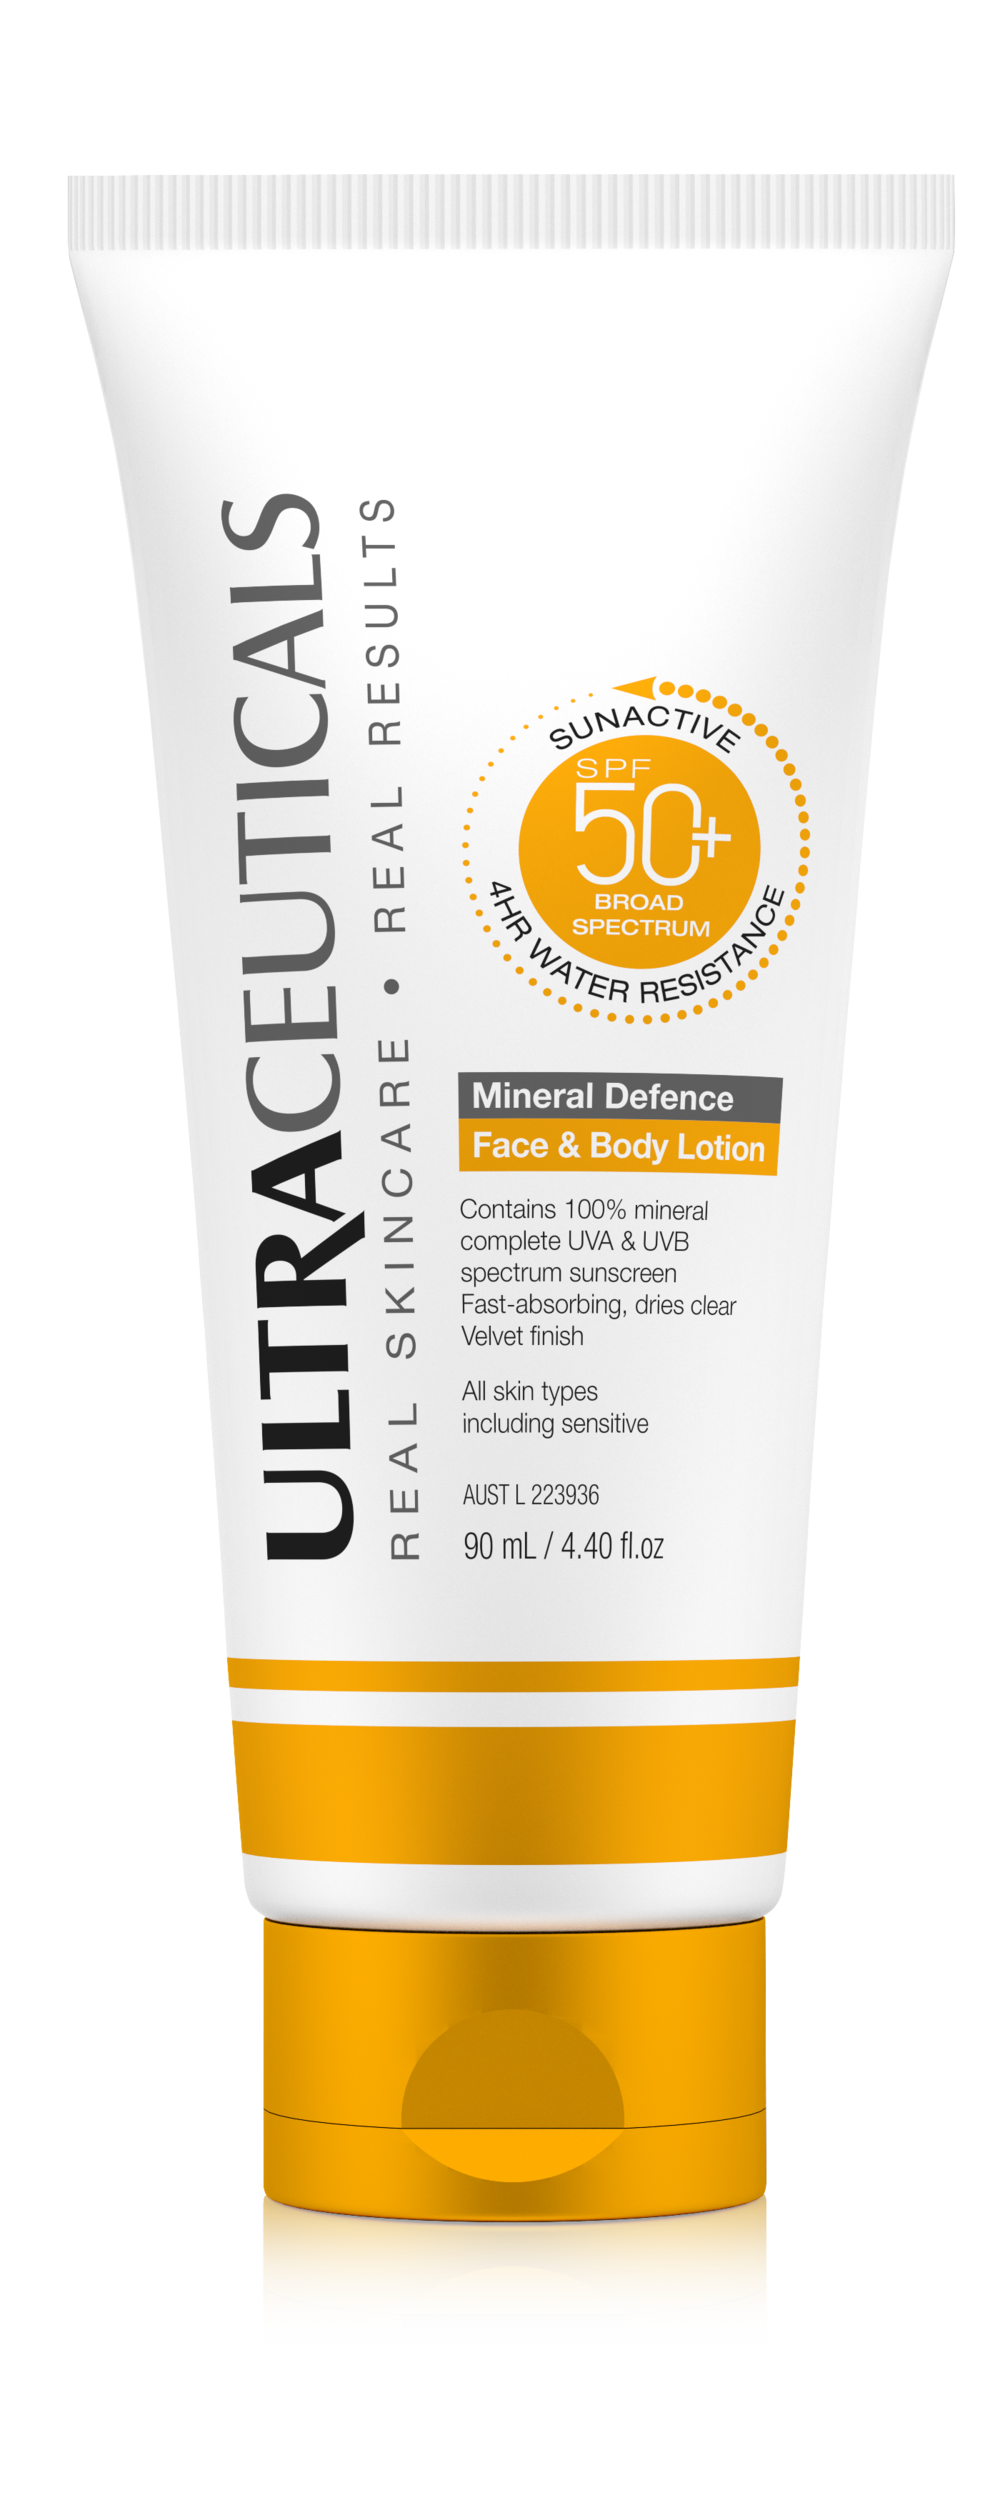 Ultraceuticals SunActive Mineral Defence Face & Body Lotion 90ml $69.png